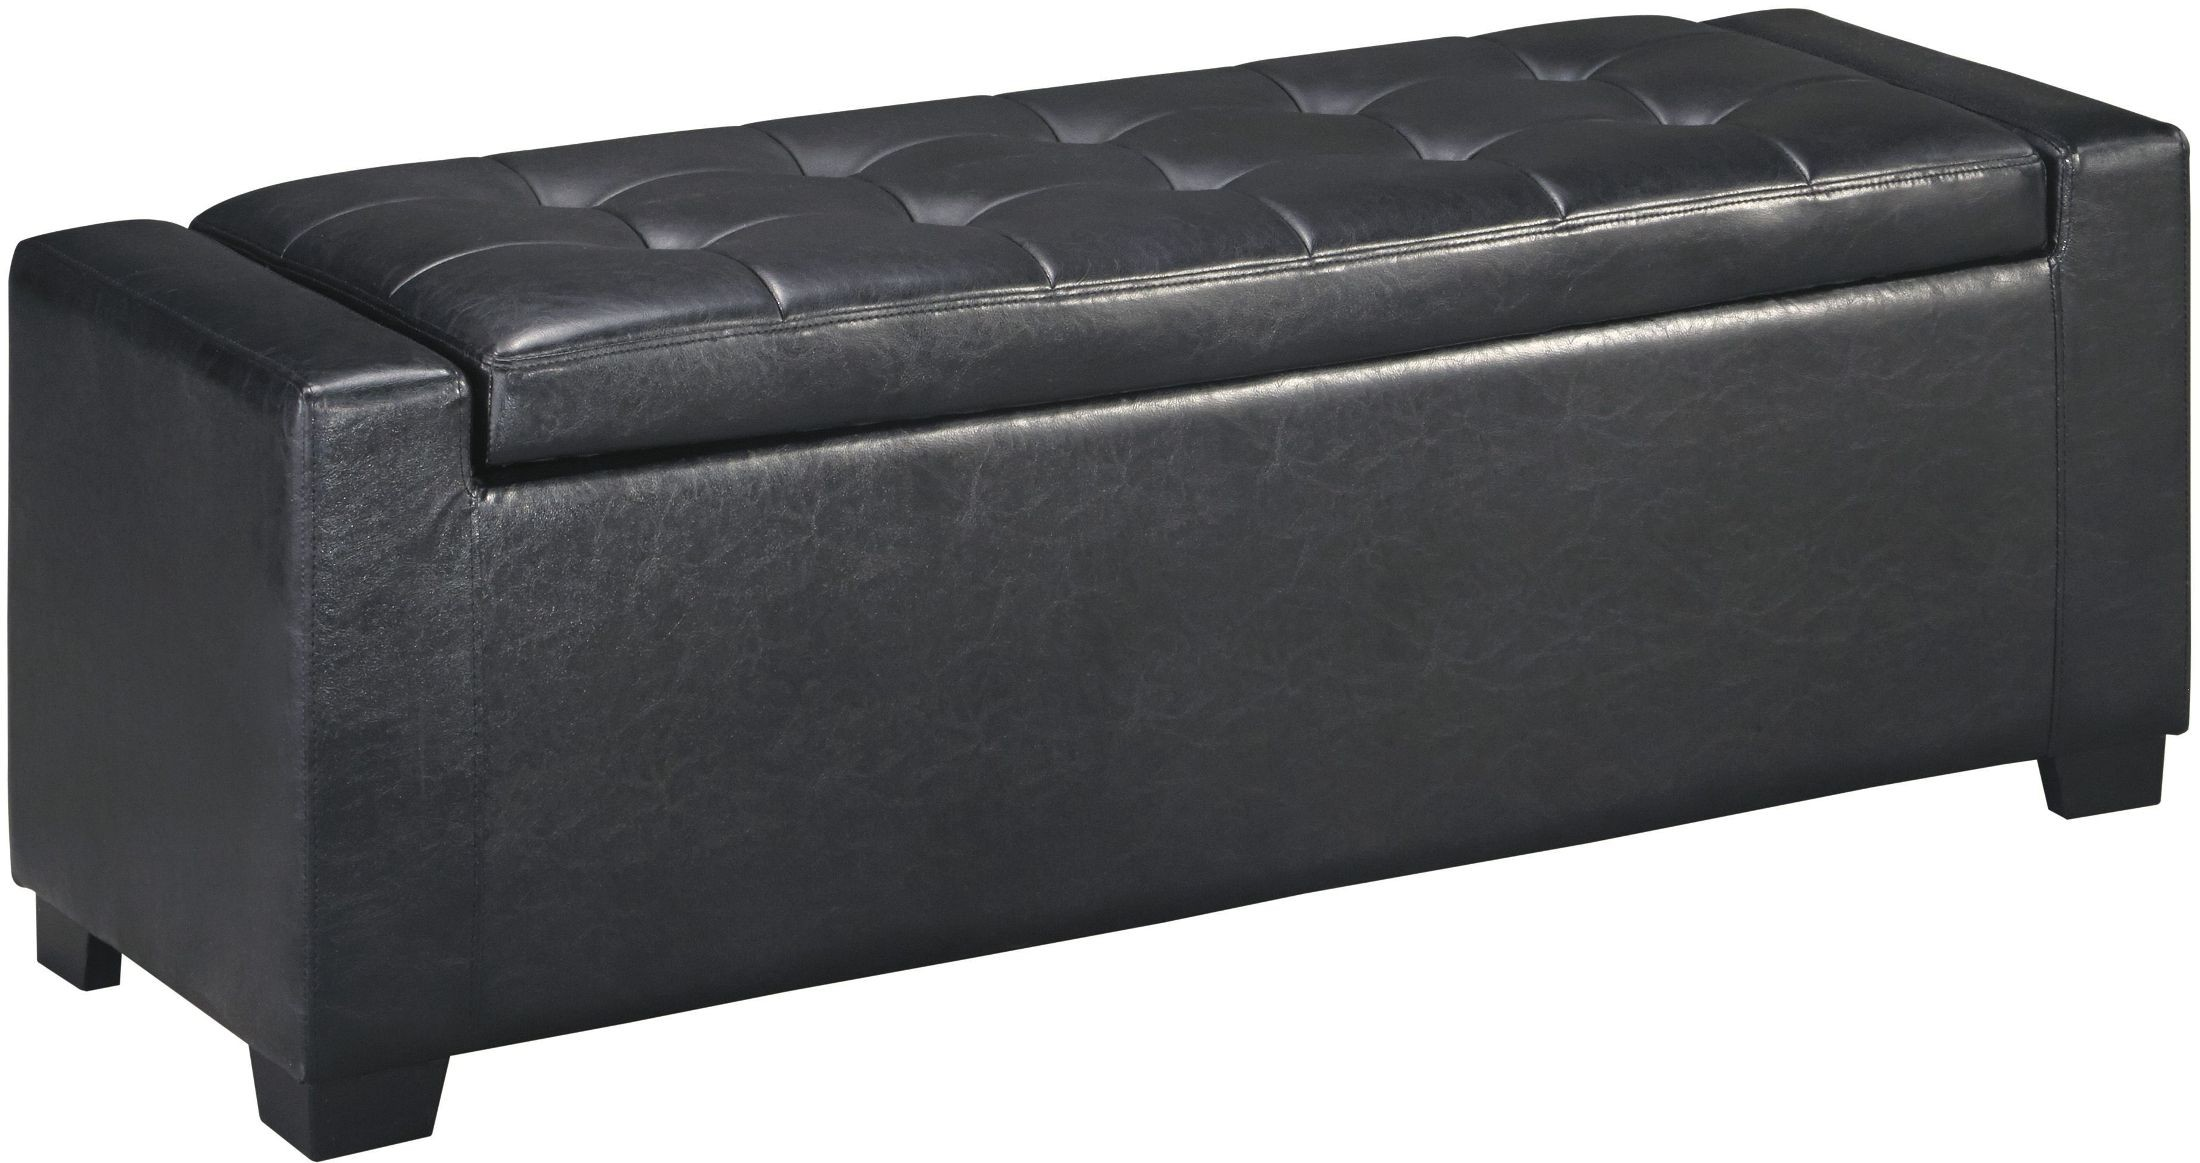 Benches Black Upholstered Storage Bench B010 209 Ashley